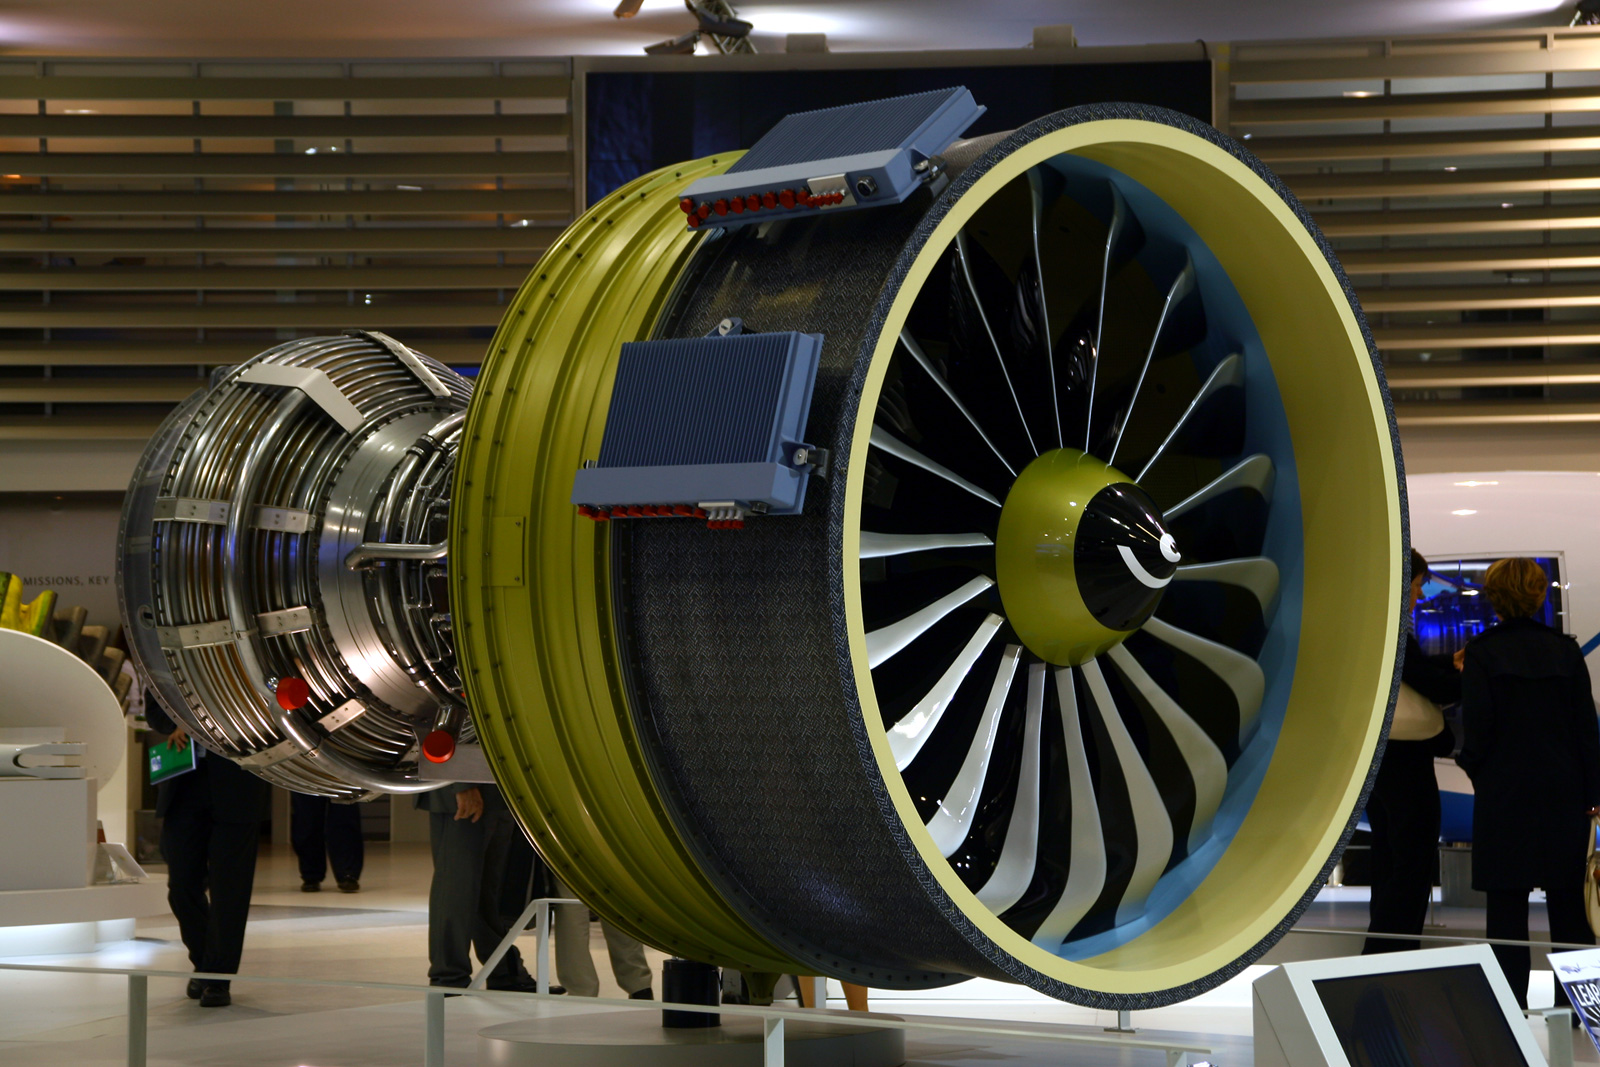 GE Leap-1 engine promises new era in fuel efficiency, with almost 7000 units on order.